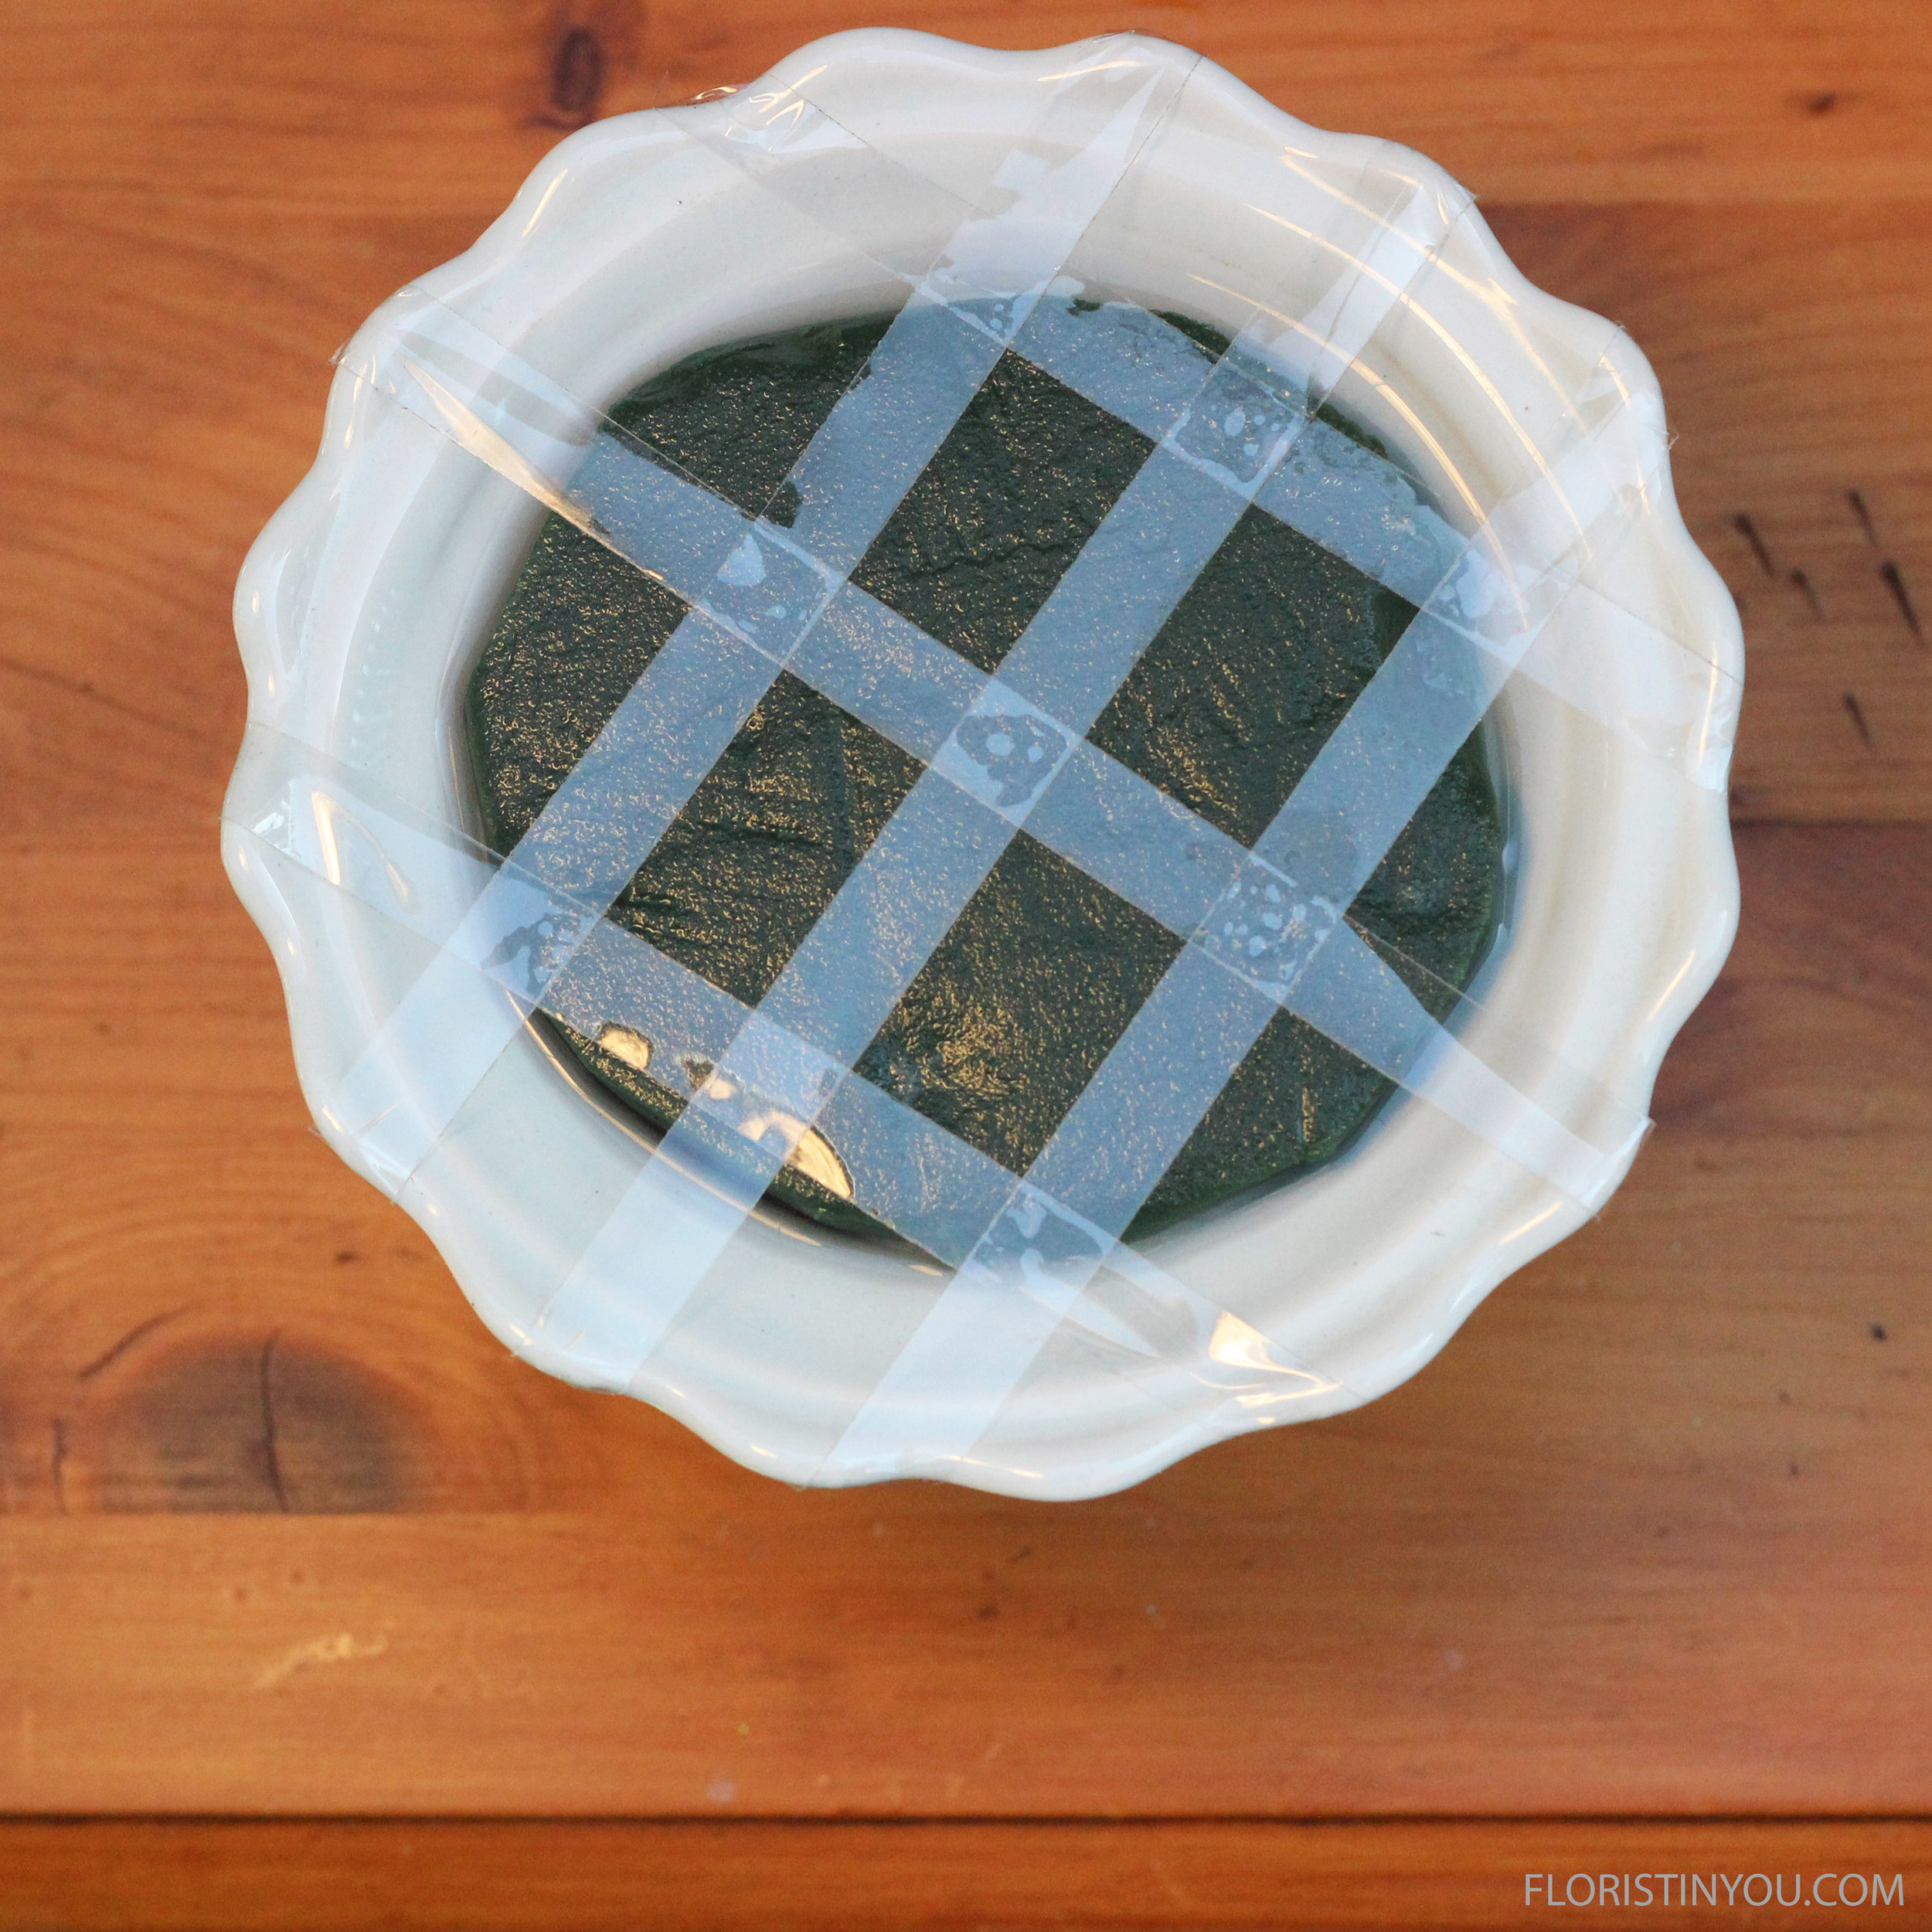 Make sure rim is dry and make grid out of waterproof tape, sticking tape to rim.